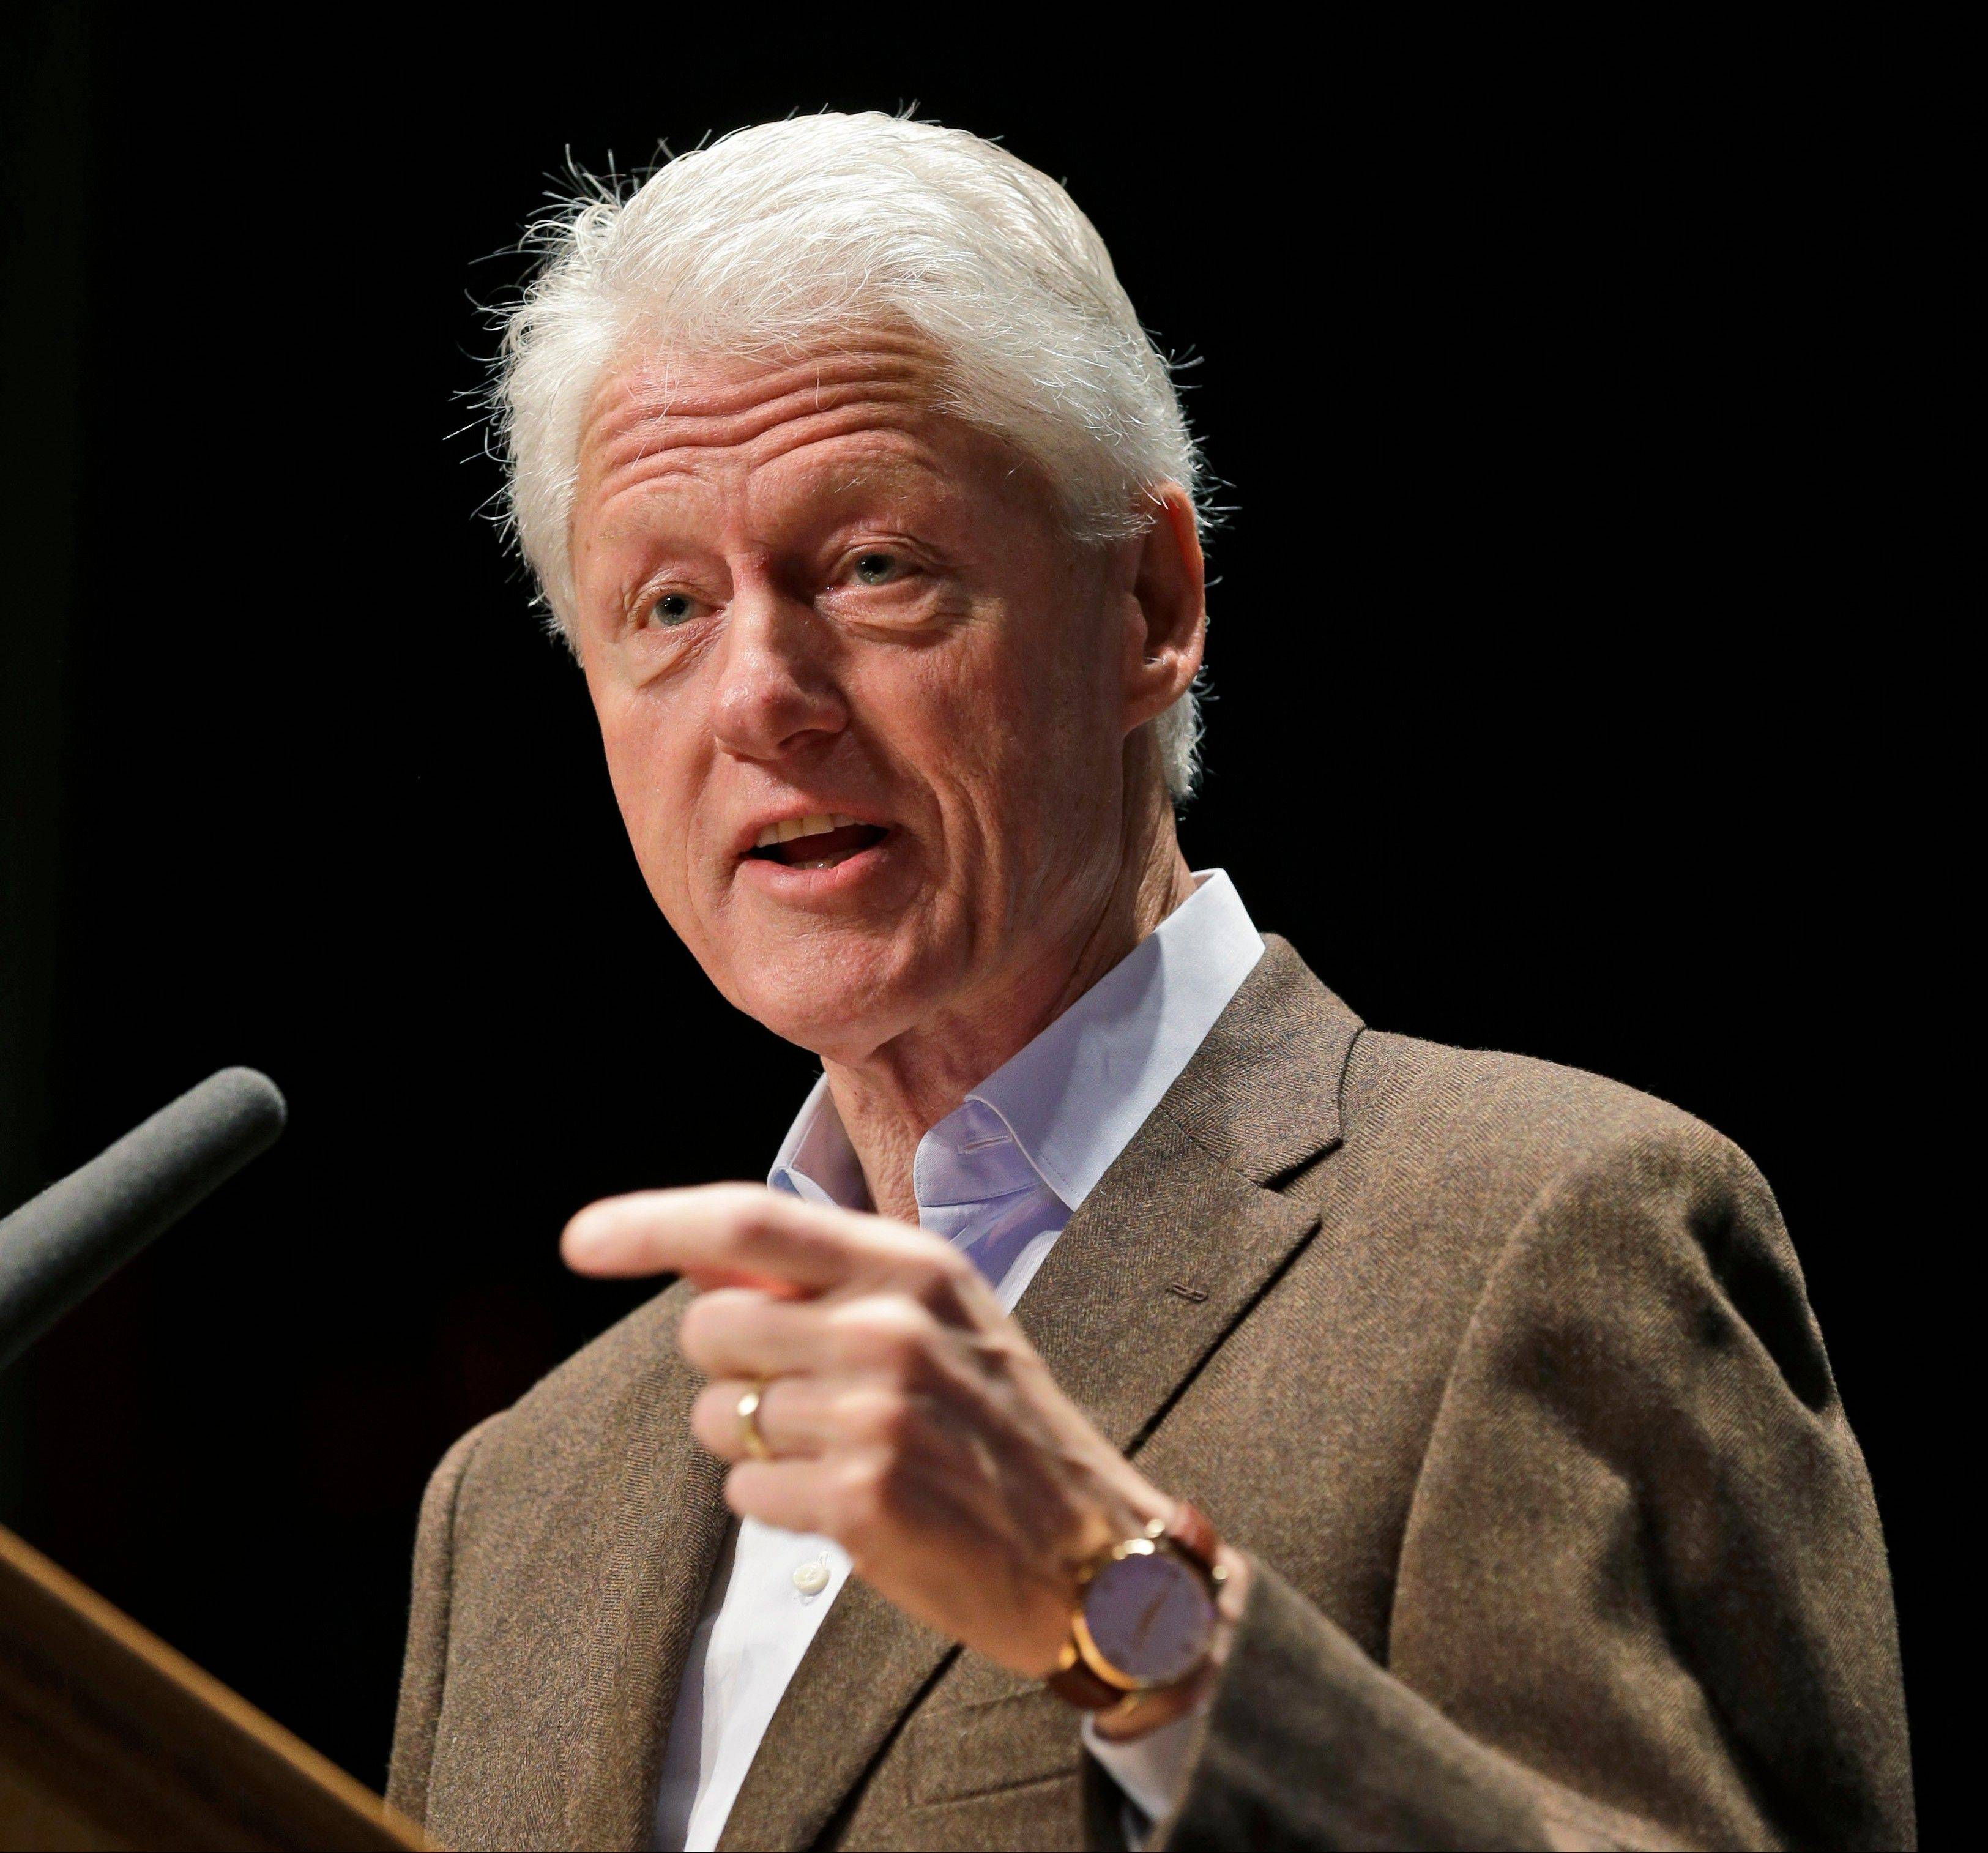 Adding to growing pressure on the White House, former President Bill Clinton said Tuesday that President Barack Obama should find a way to let people keep their health coverage.